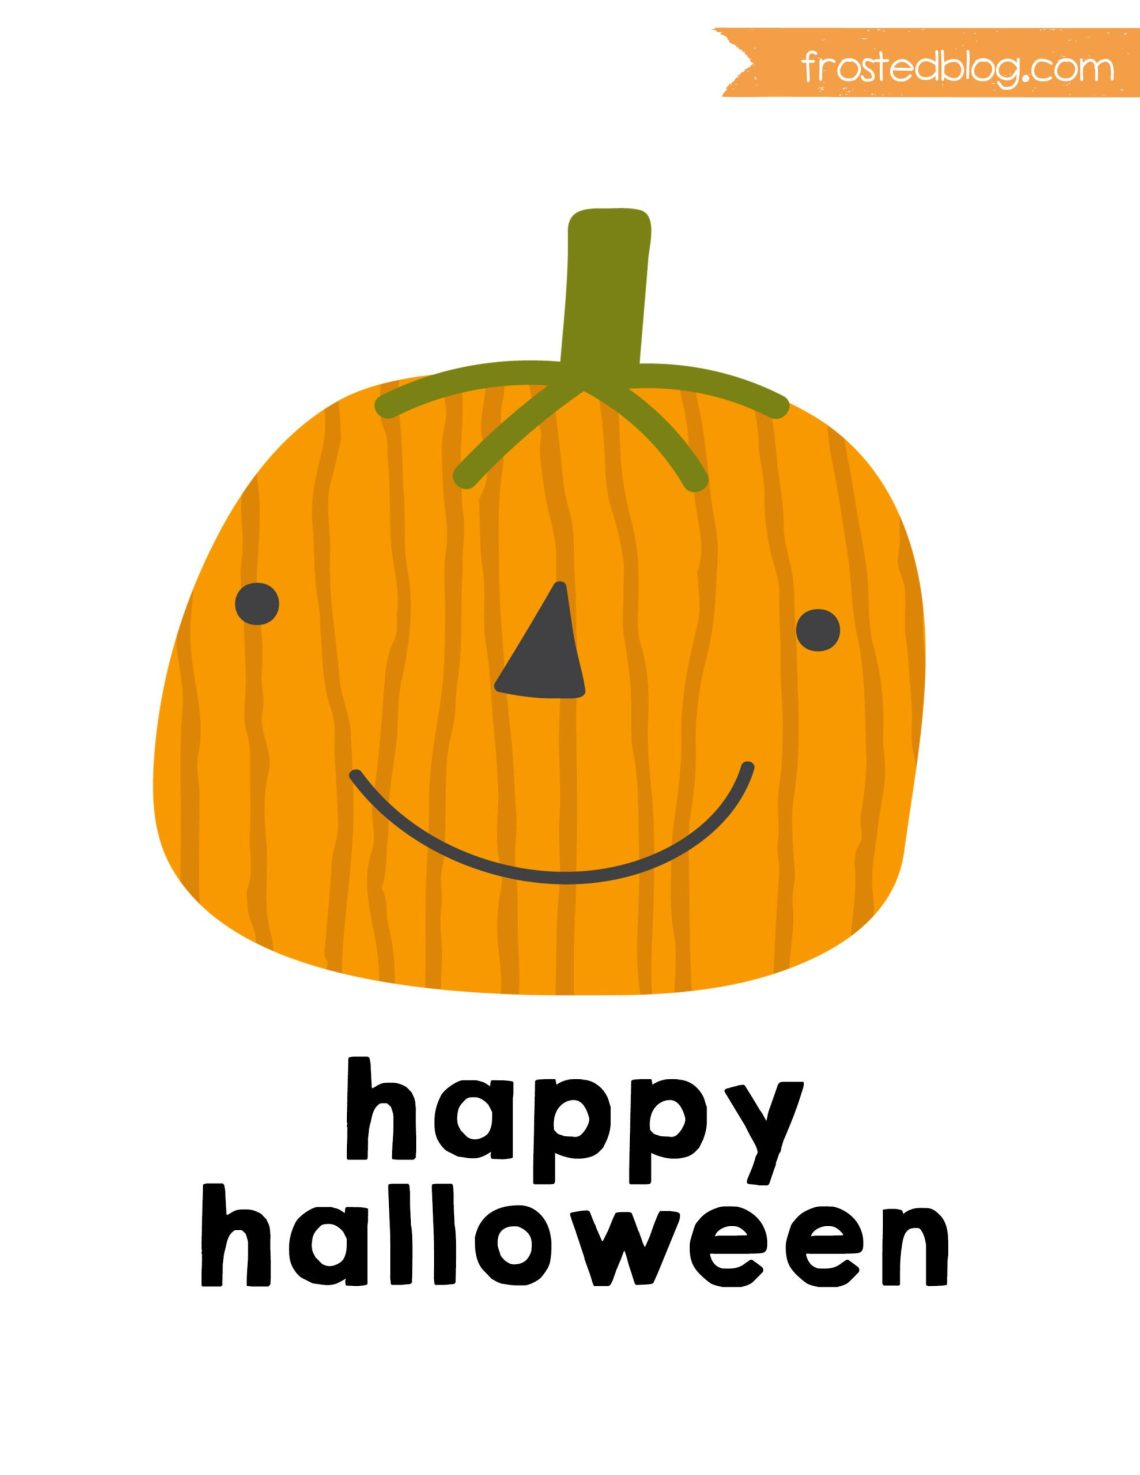 Happy Halloween Images - printable Halloween cards - Halloween pictures